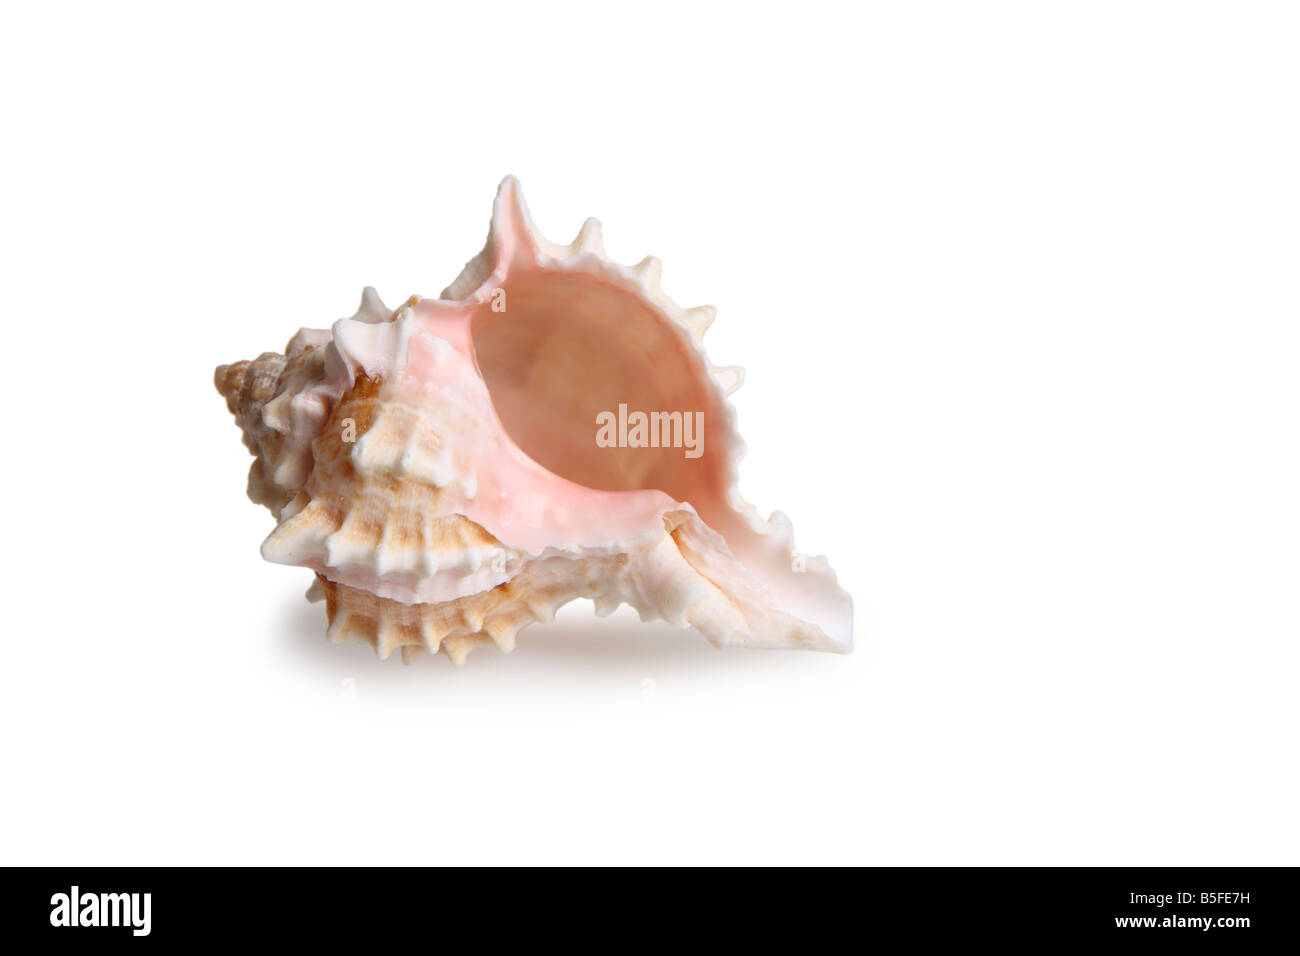 Shell cutout on white background - Stock Image